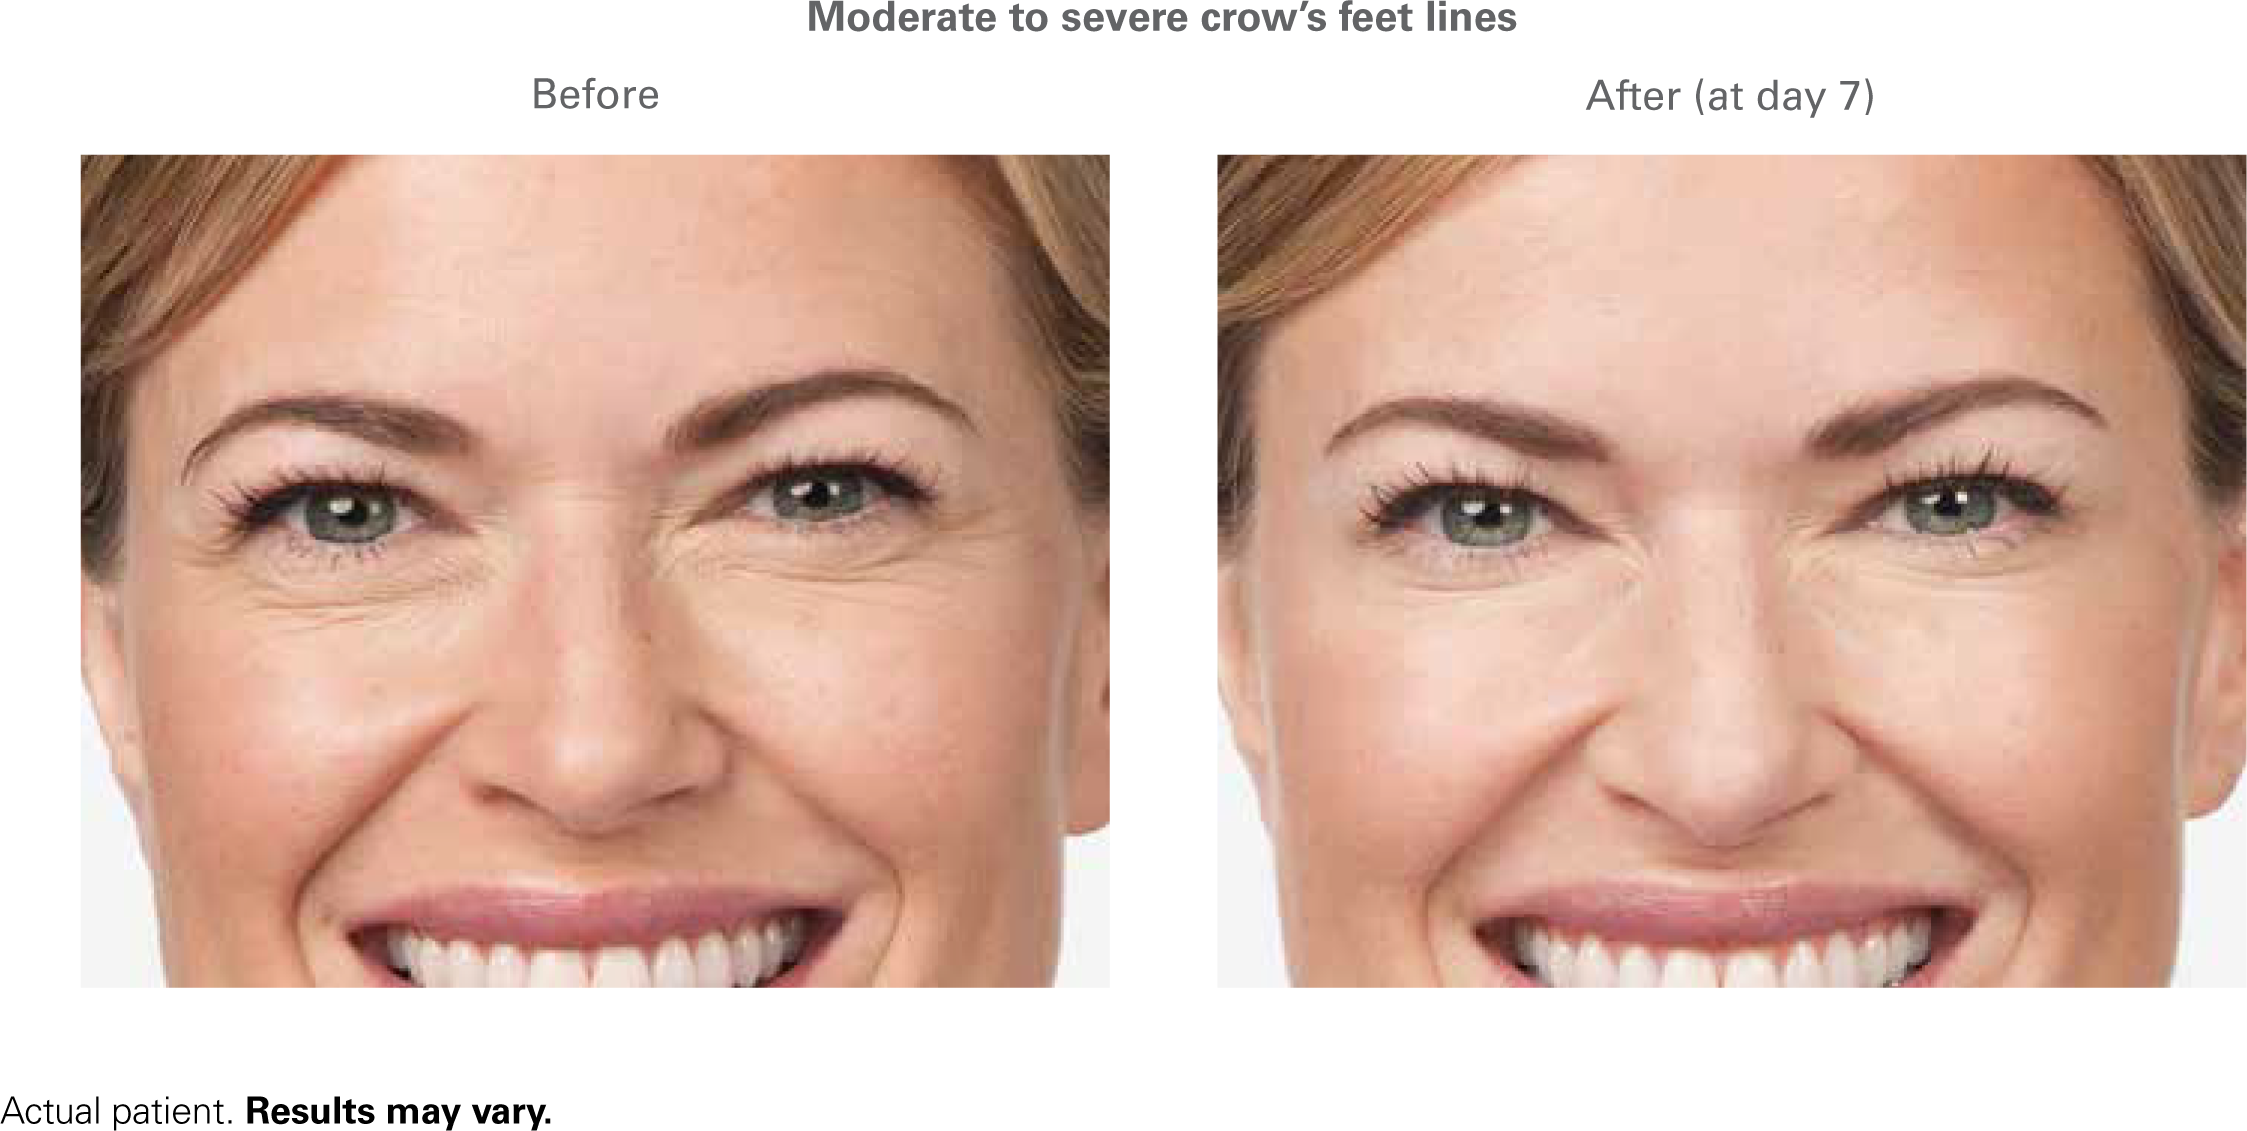 botox before and after - moderate crows feet  What a